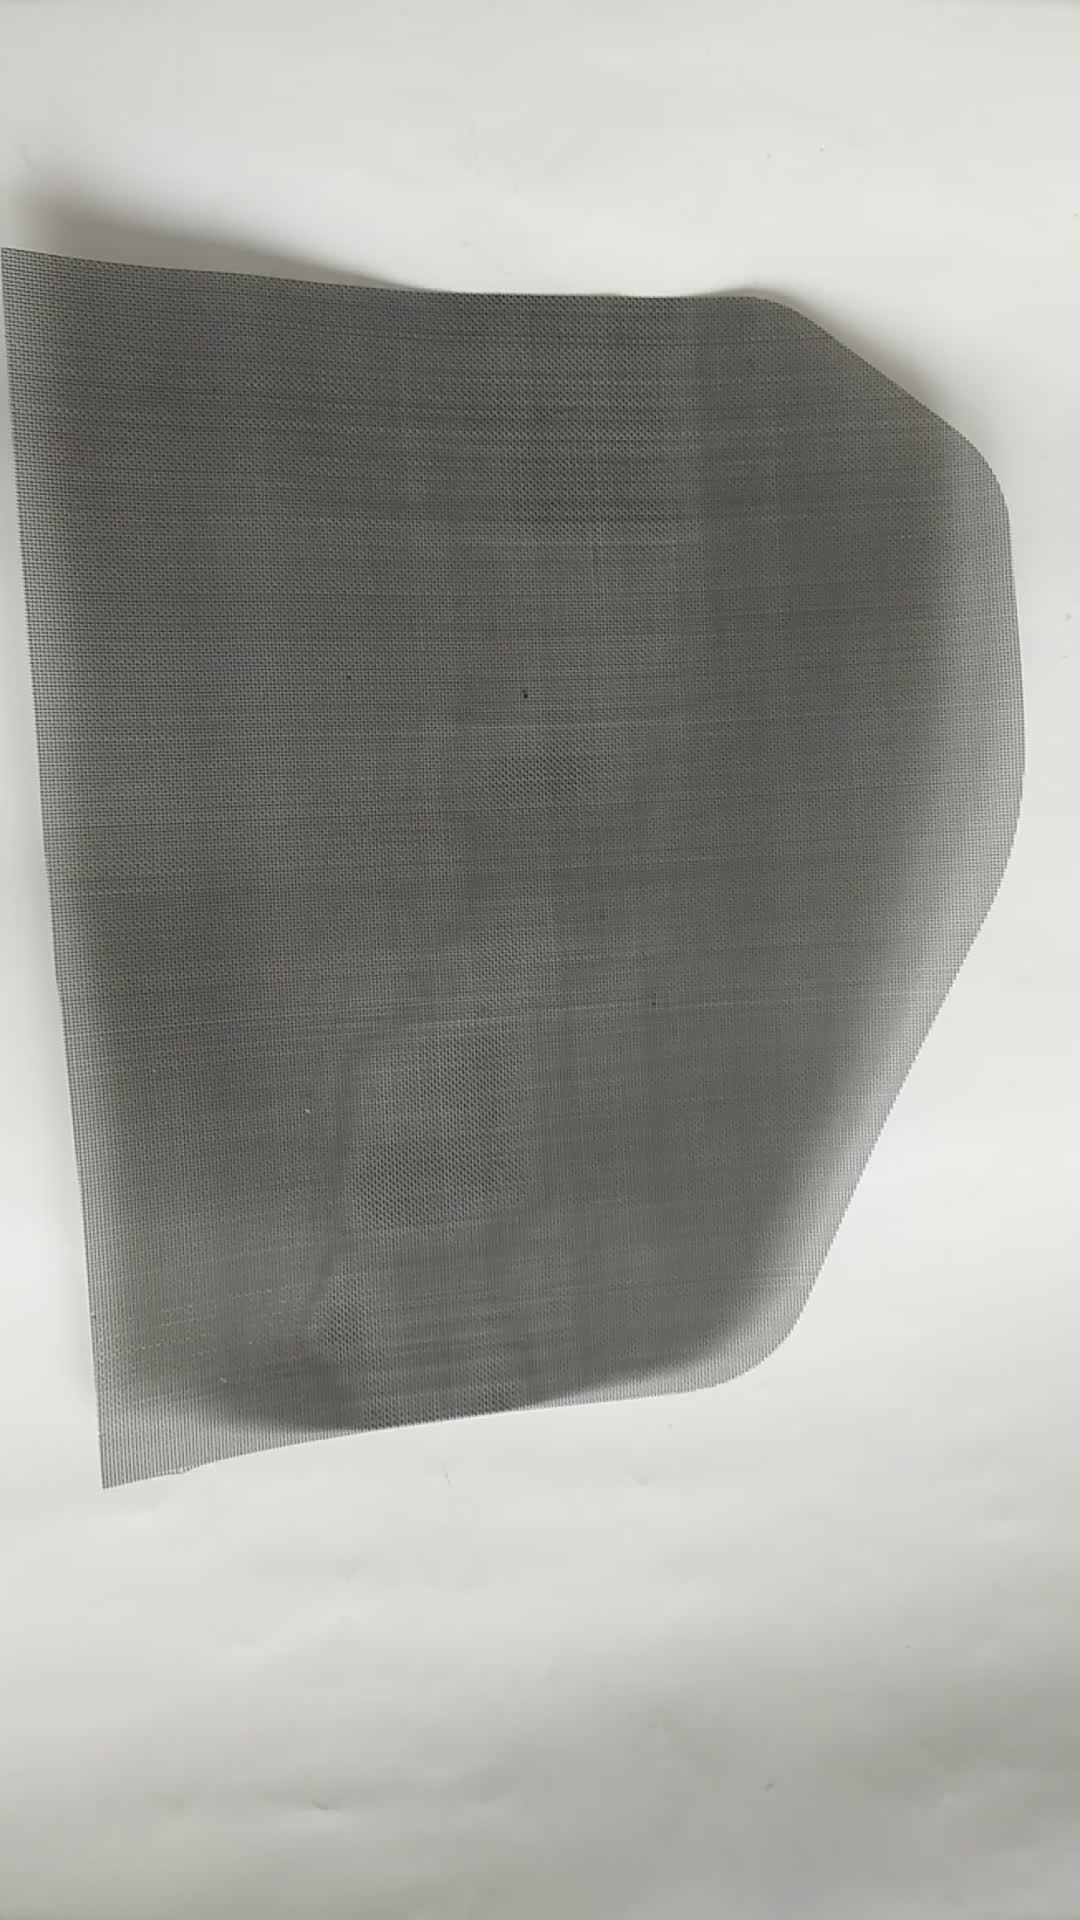 Stainless steel wire expanded metal  mesh